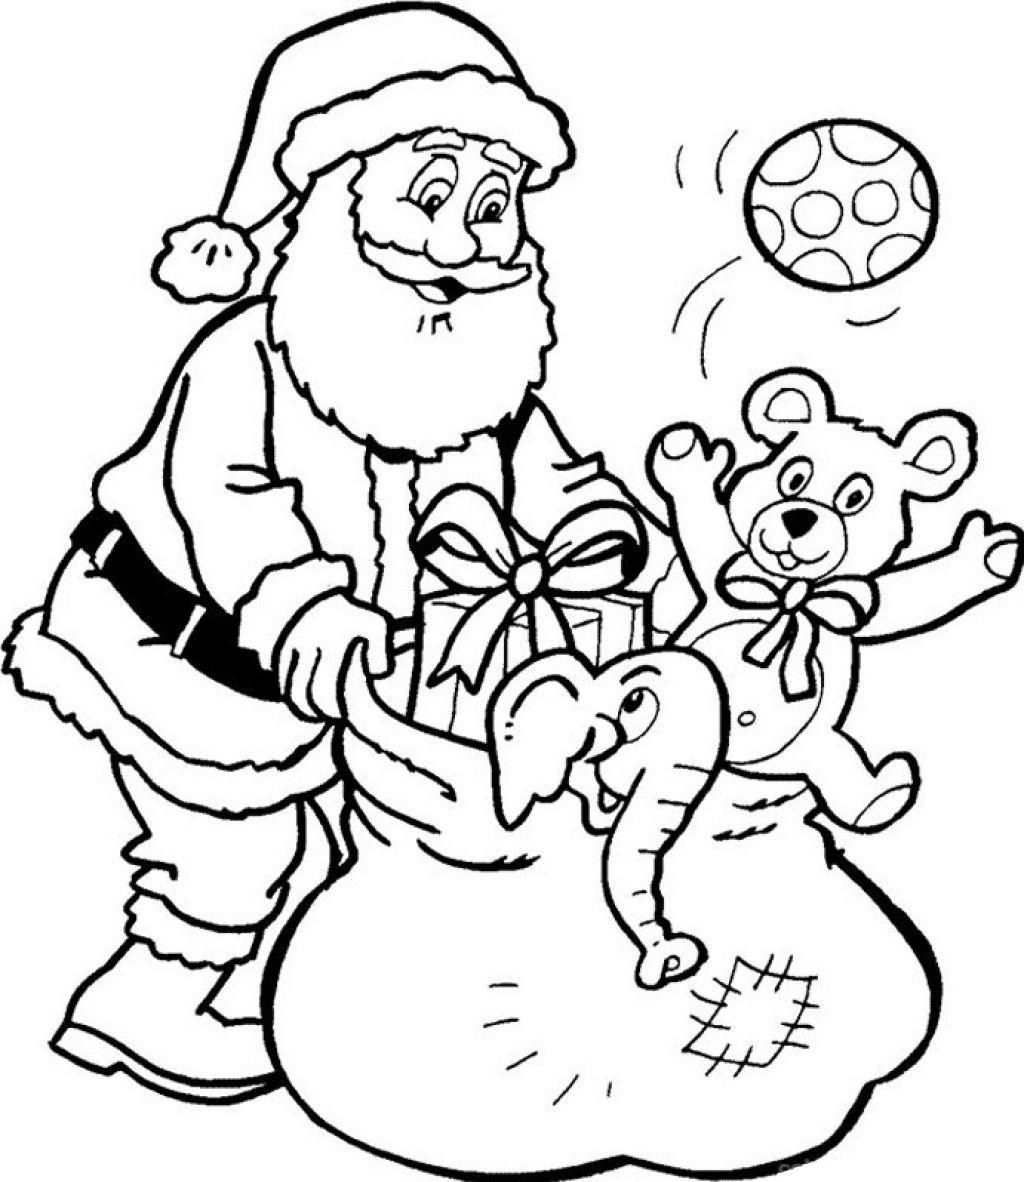 1024x1182 Printable Santa Claus Coloring Page Printable Santa Claus Coloring